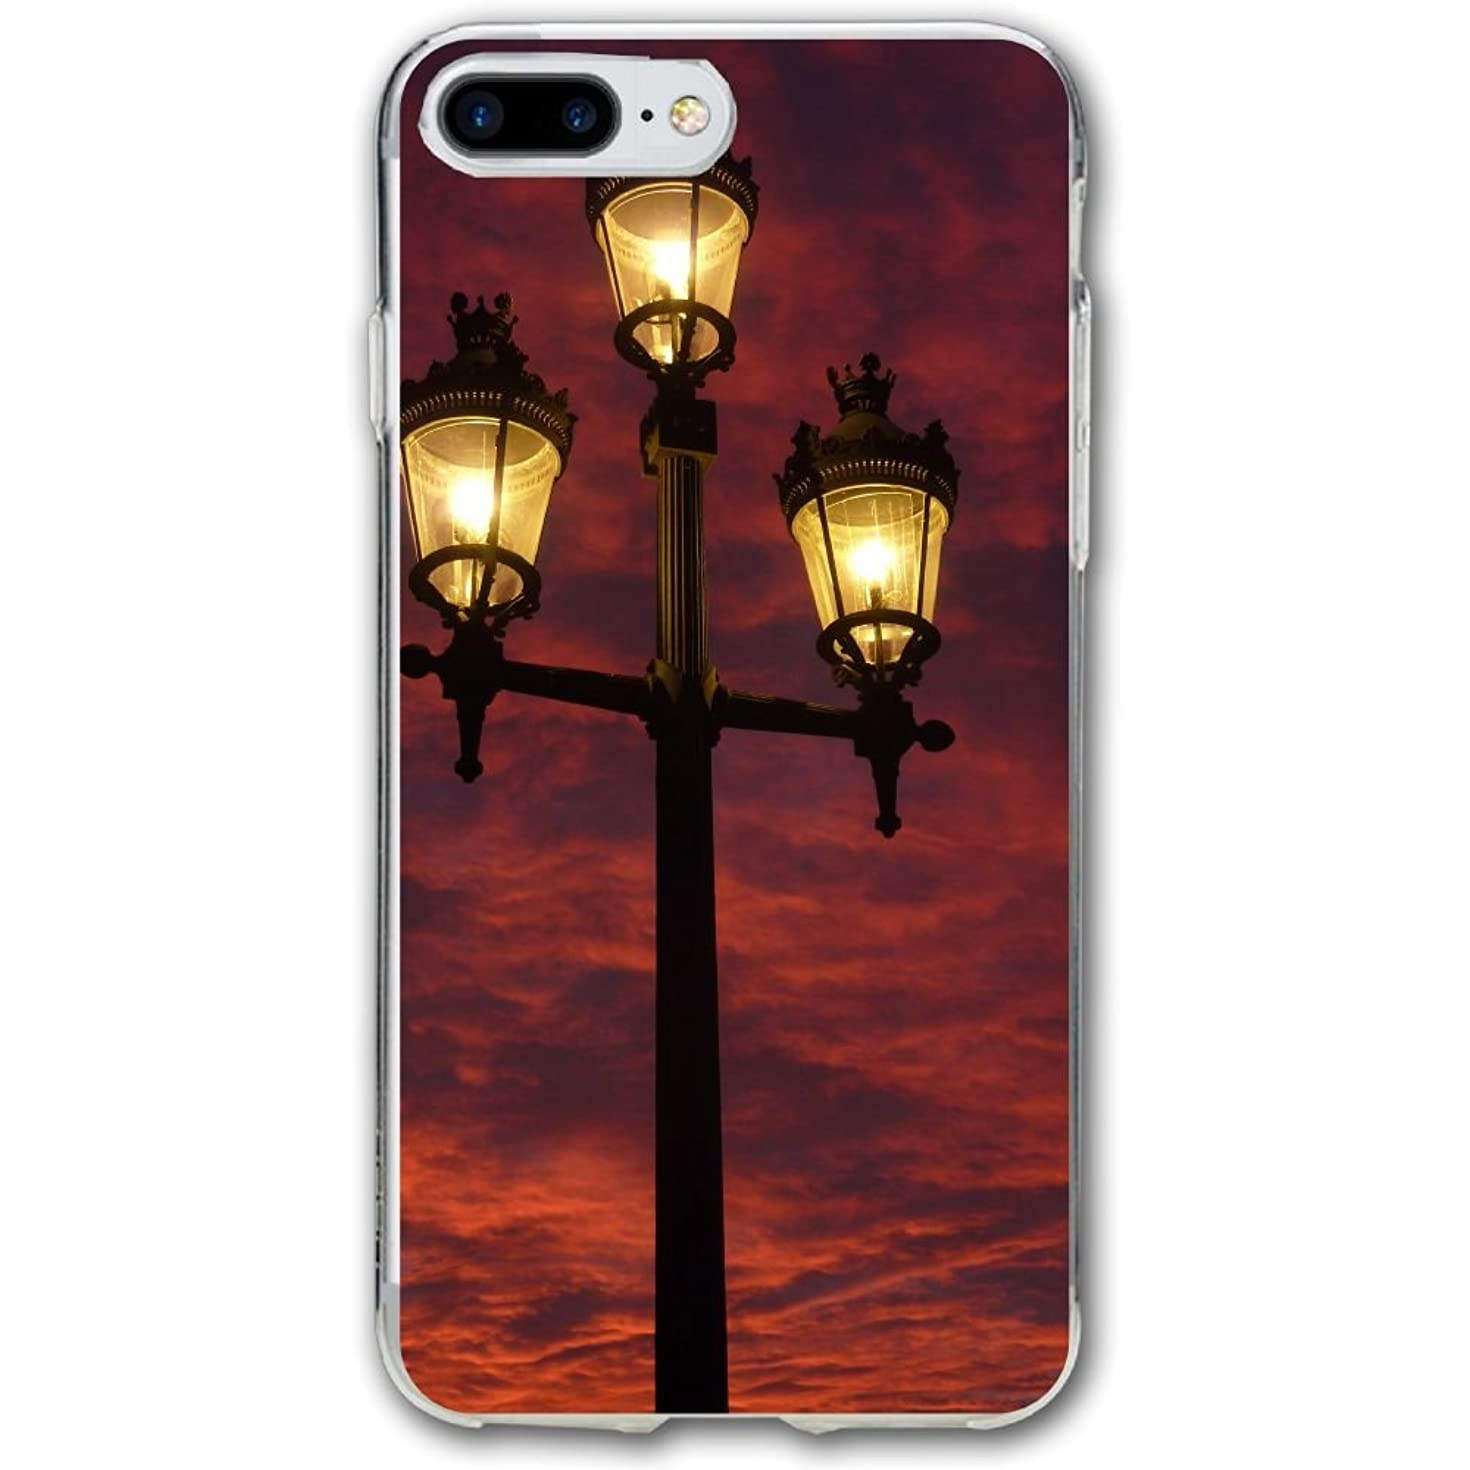 Case For Iphone 7 Plus Street Lamp Lantern Slim Fit Shell Full Protective Anti-Scratch Resistant Cover Apple IPhone 7 Plus Case